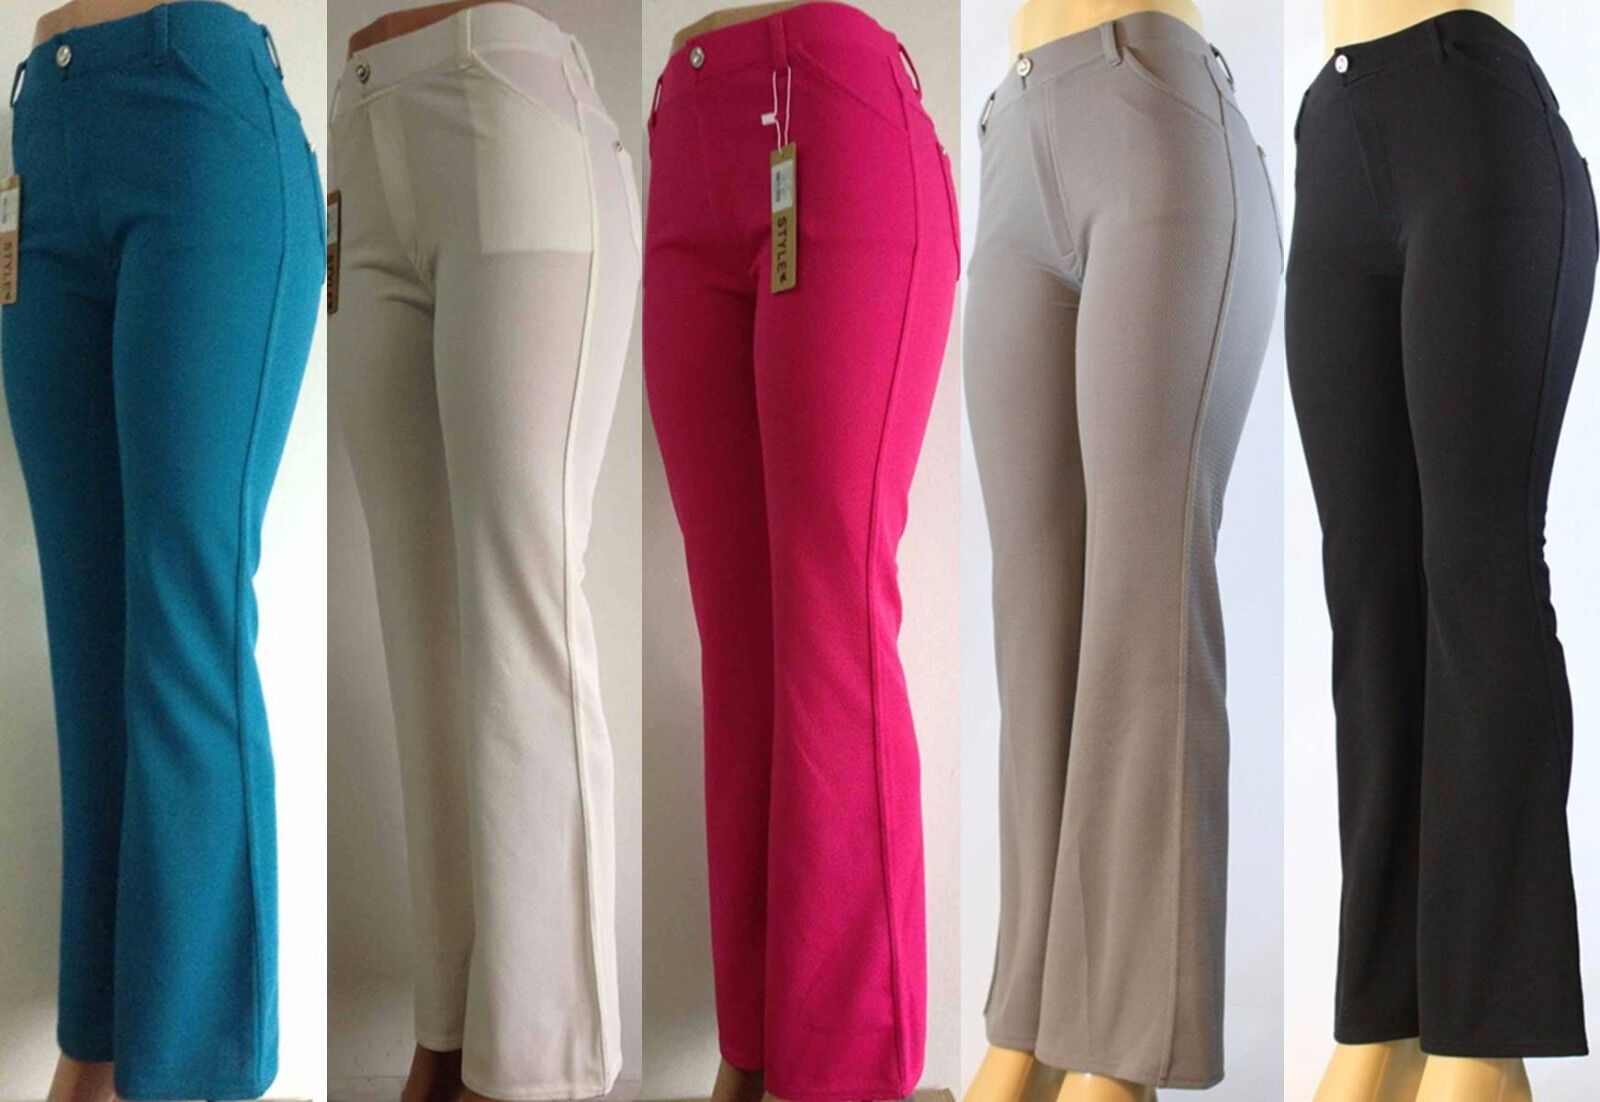 New Women Jean-Style Bootcut Curvy Fit Pants